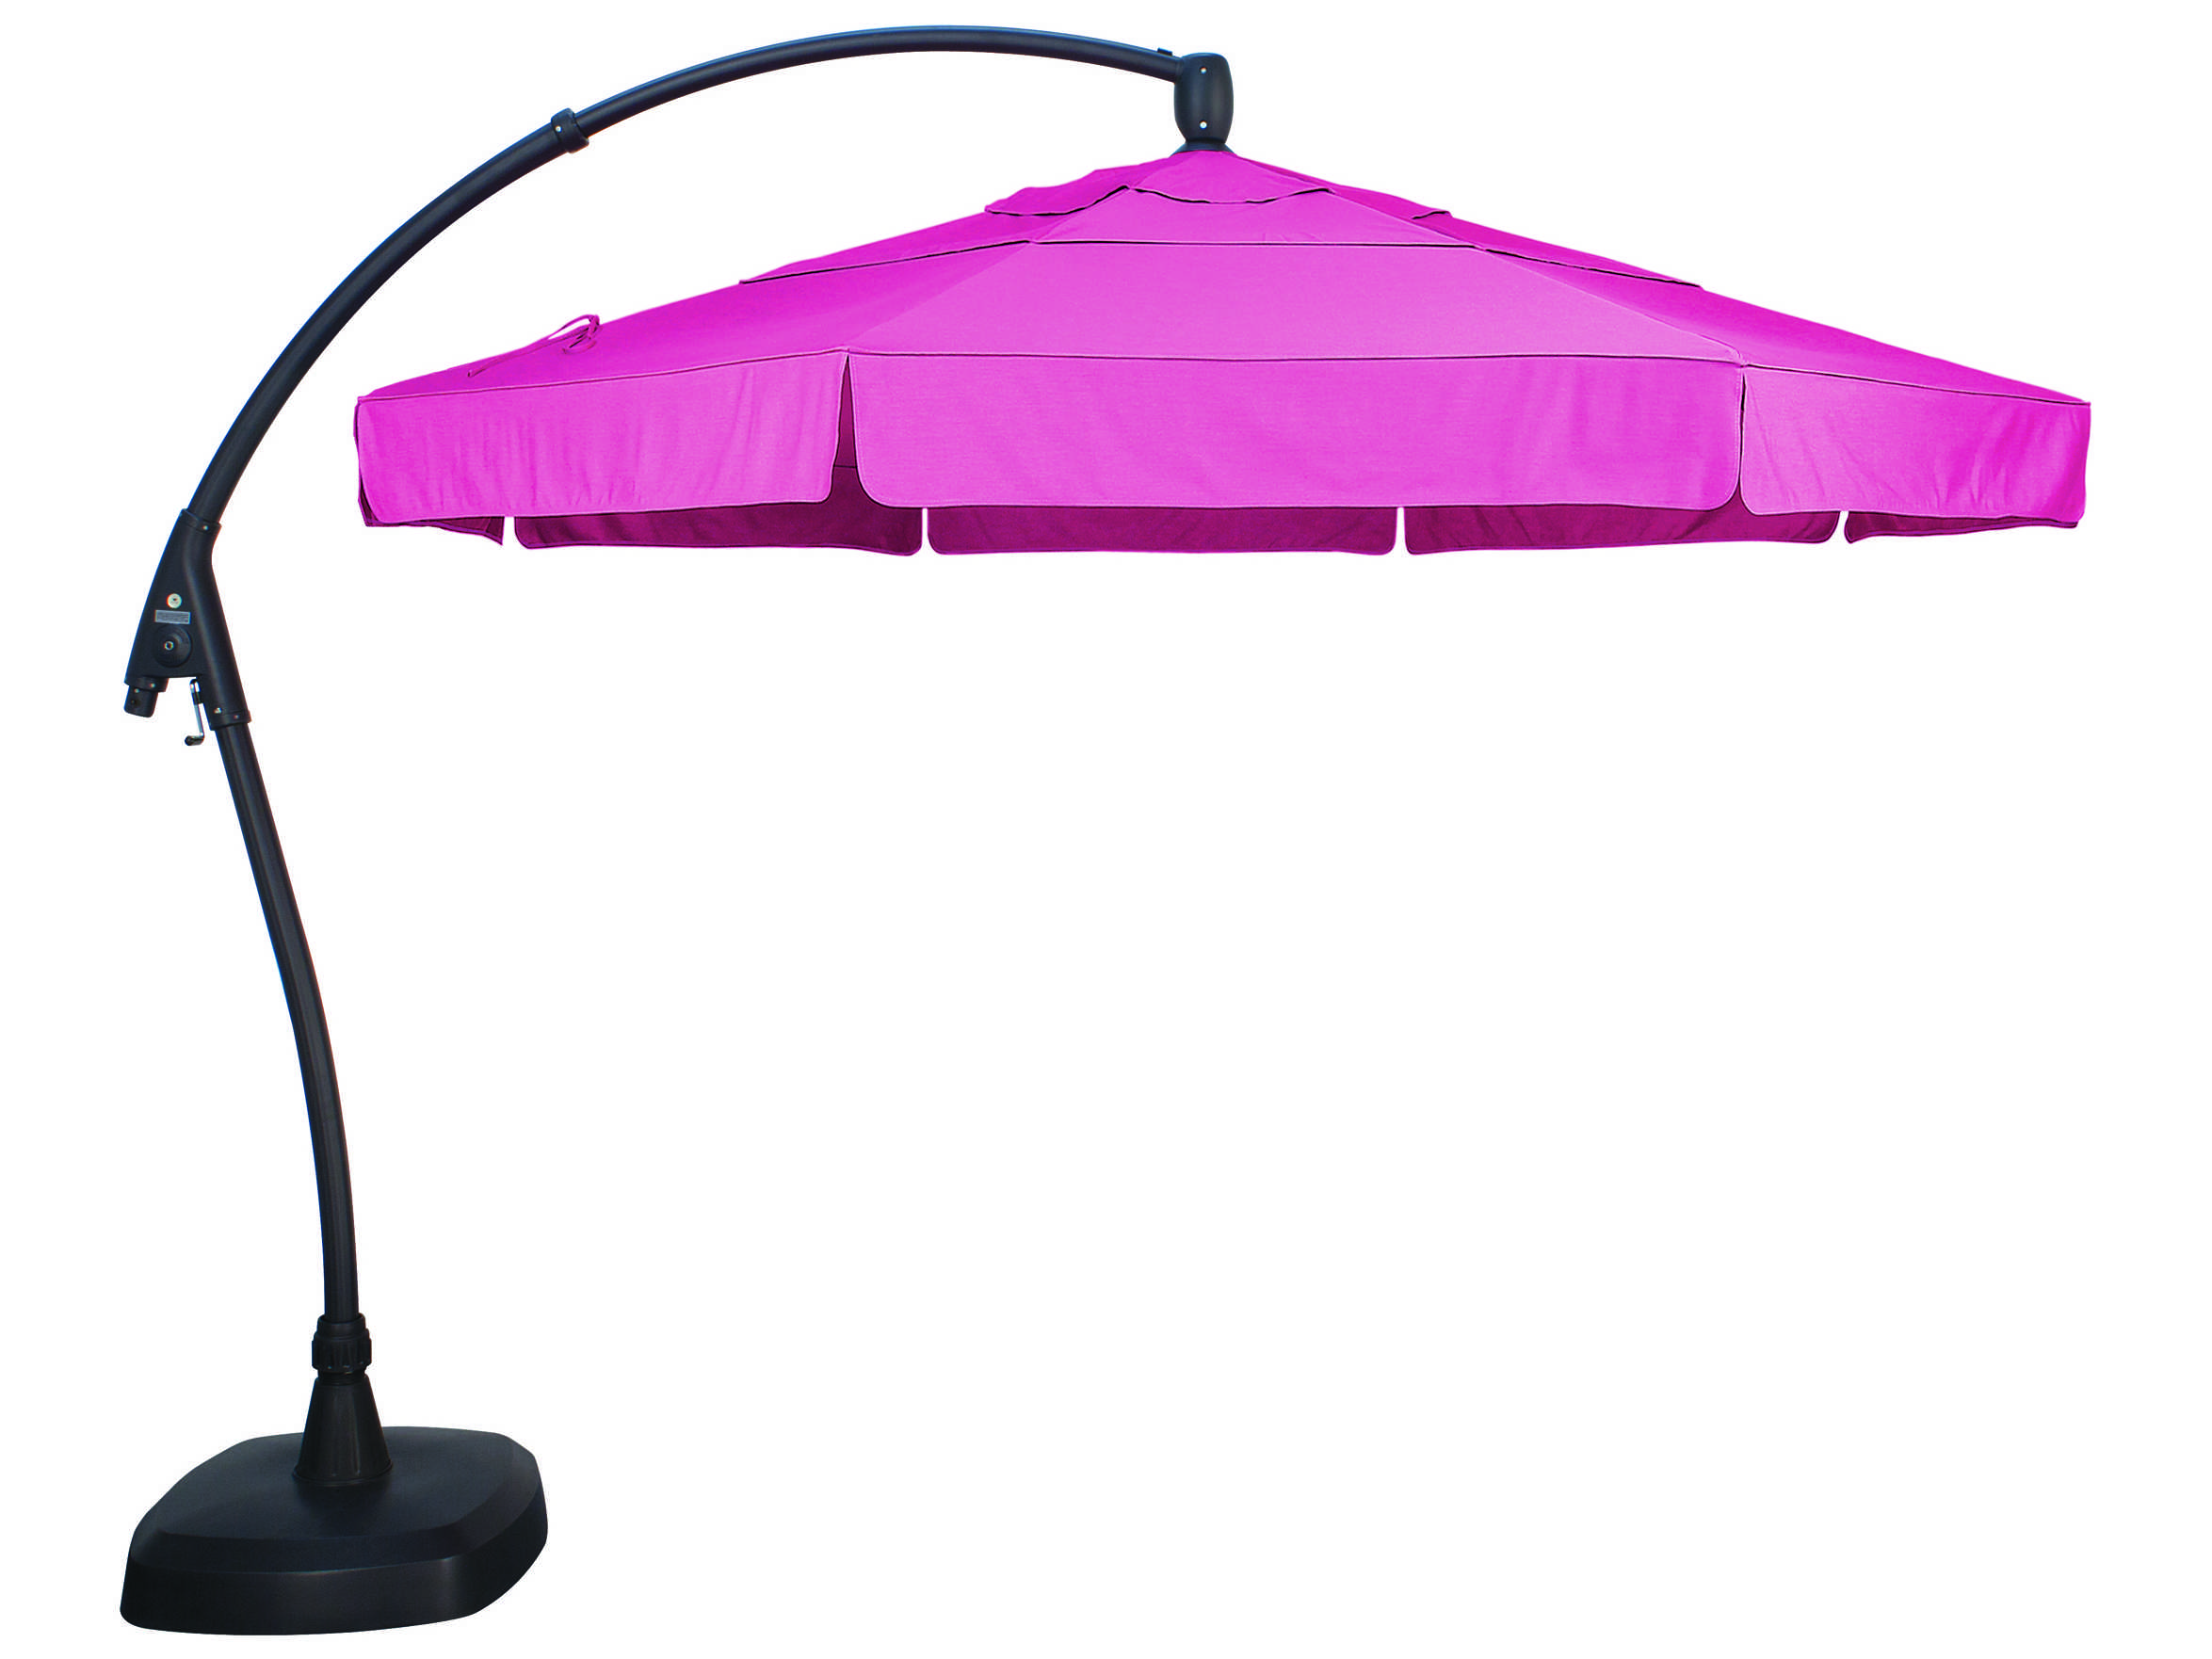 Umbrella Cover Included - Base sold separately